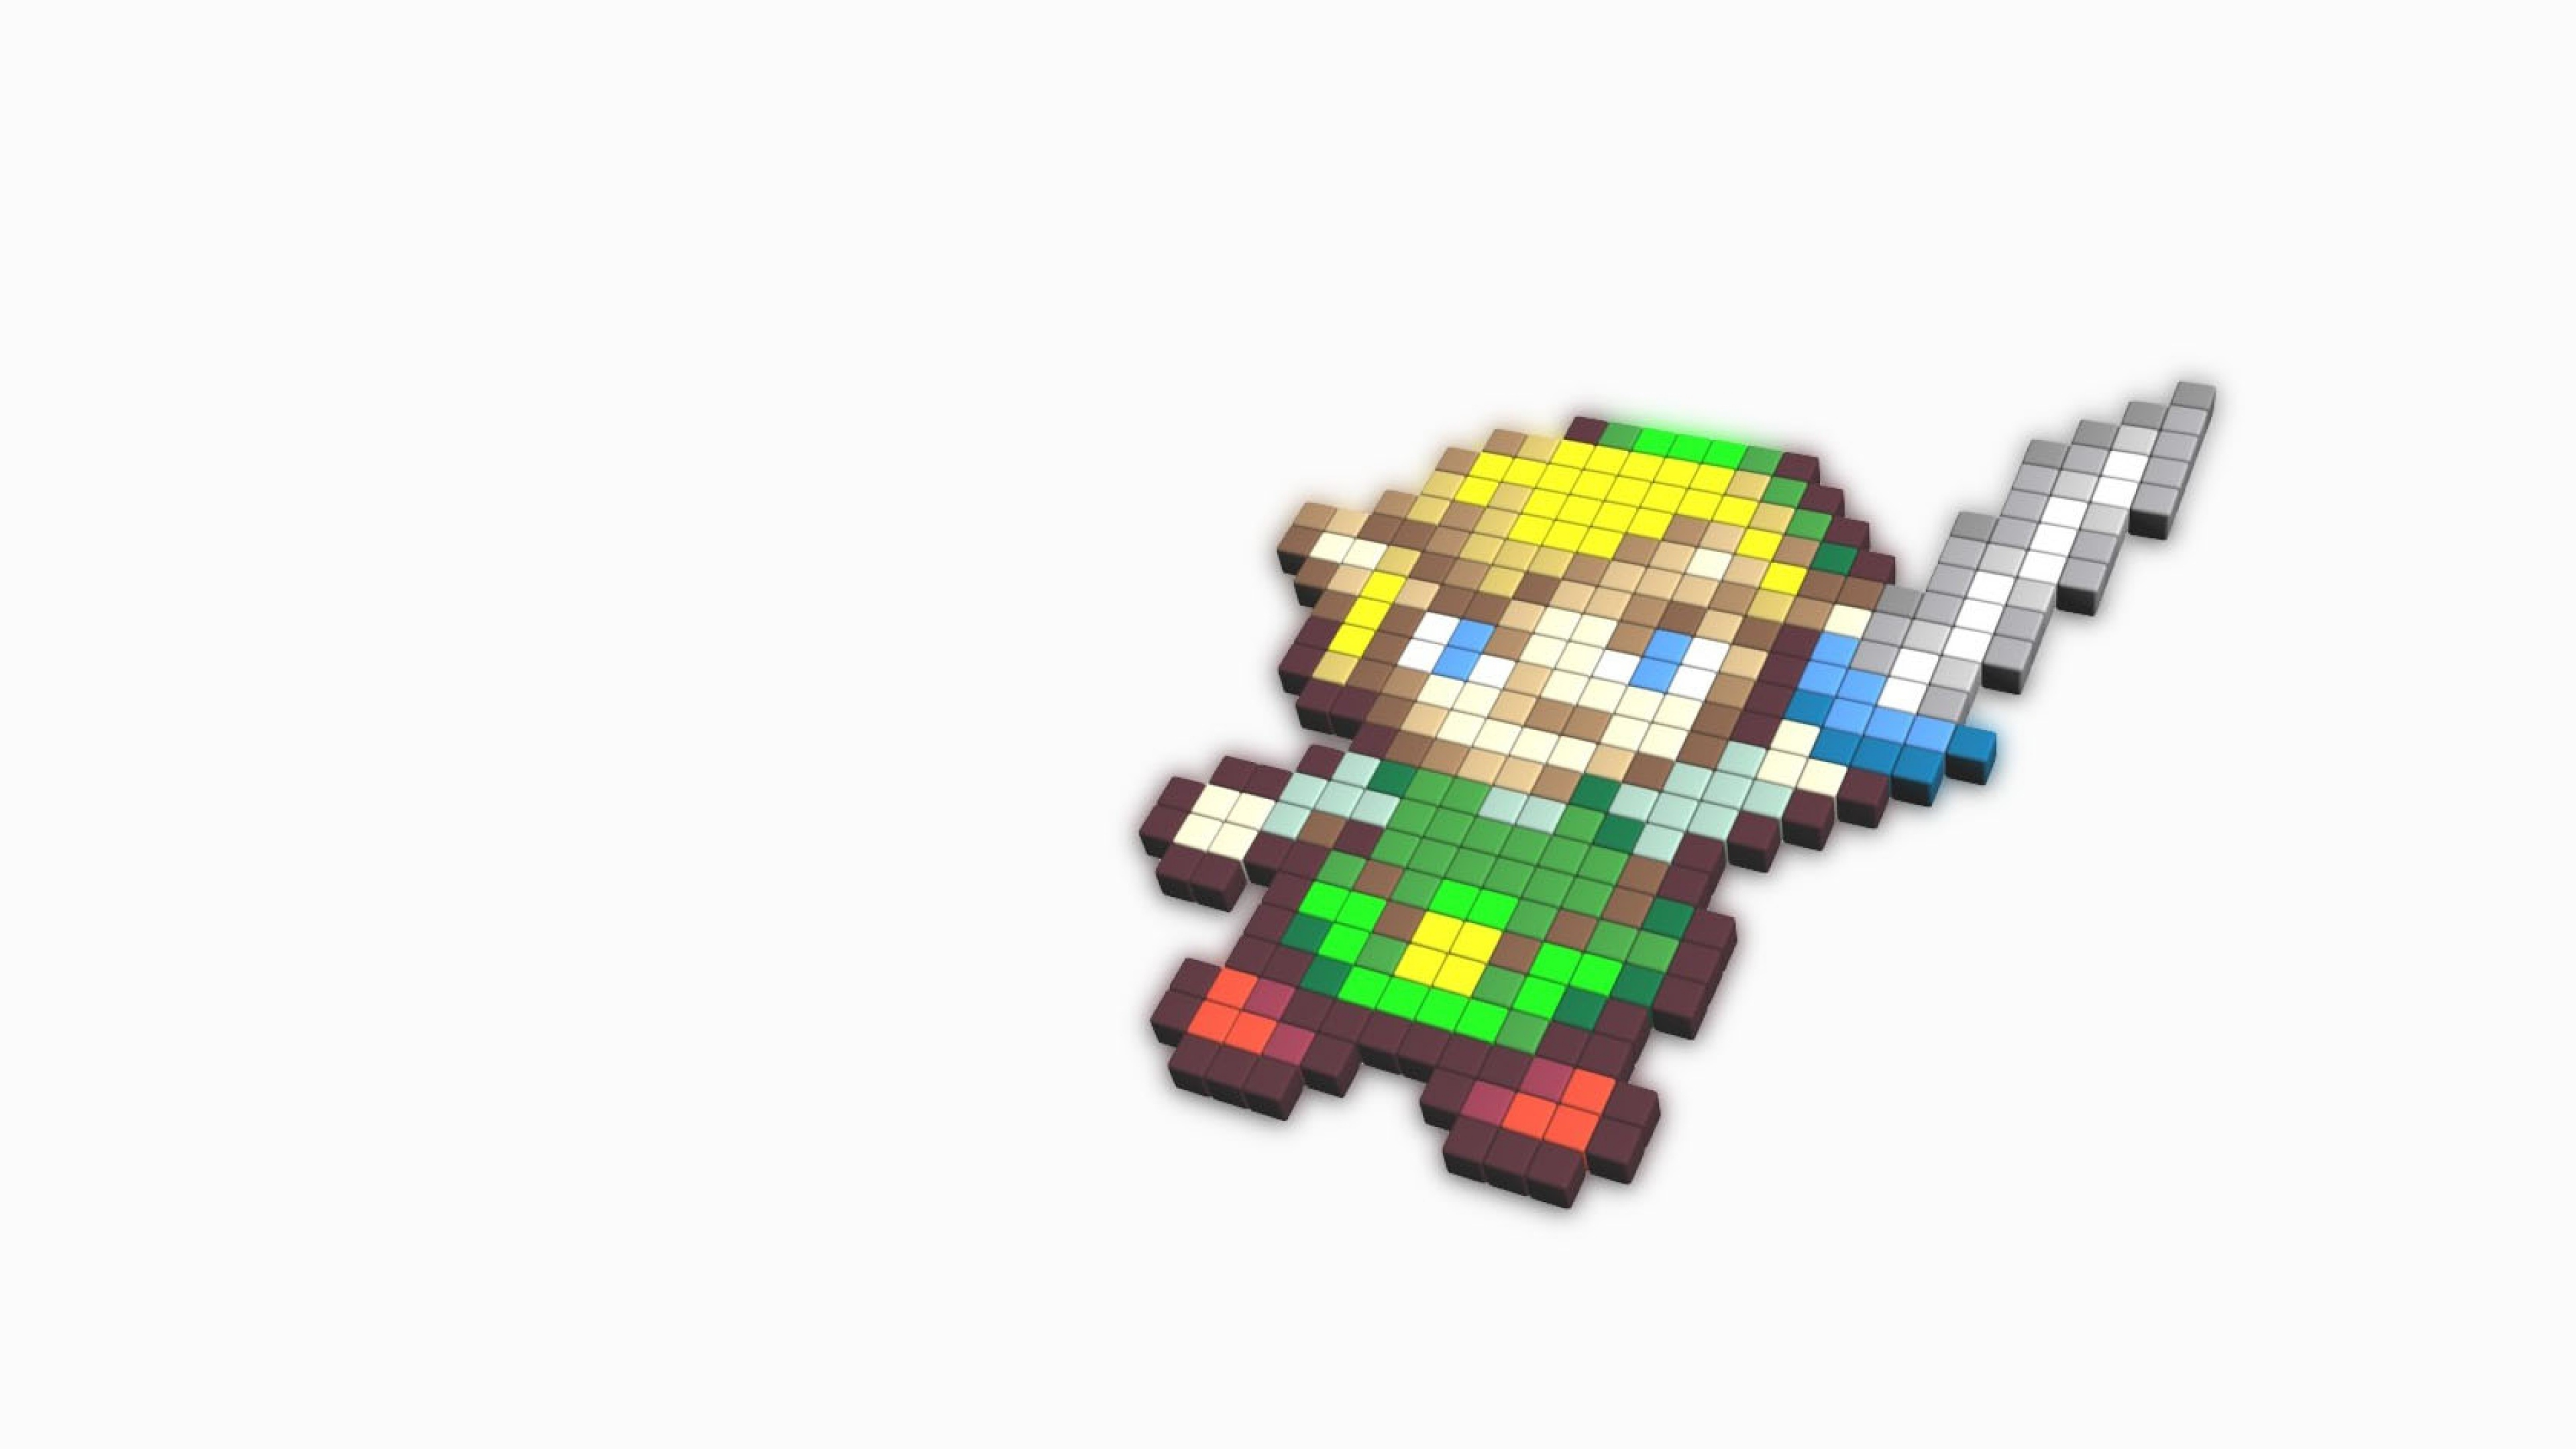 zelda Character White Cubes Link Wallpaper Background 4K Ultra HD 3840x2160